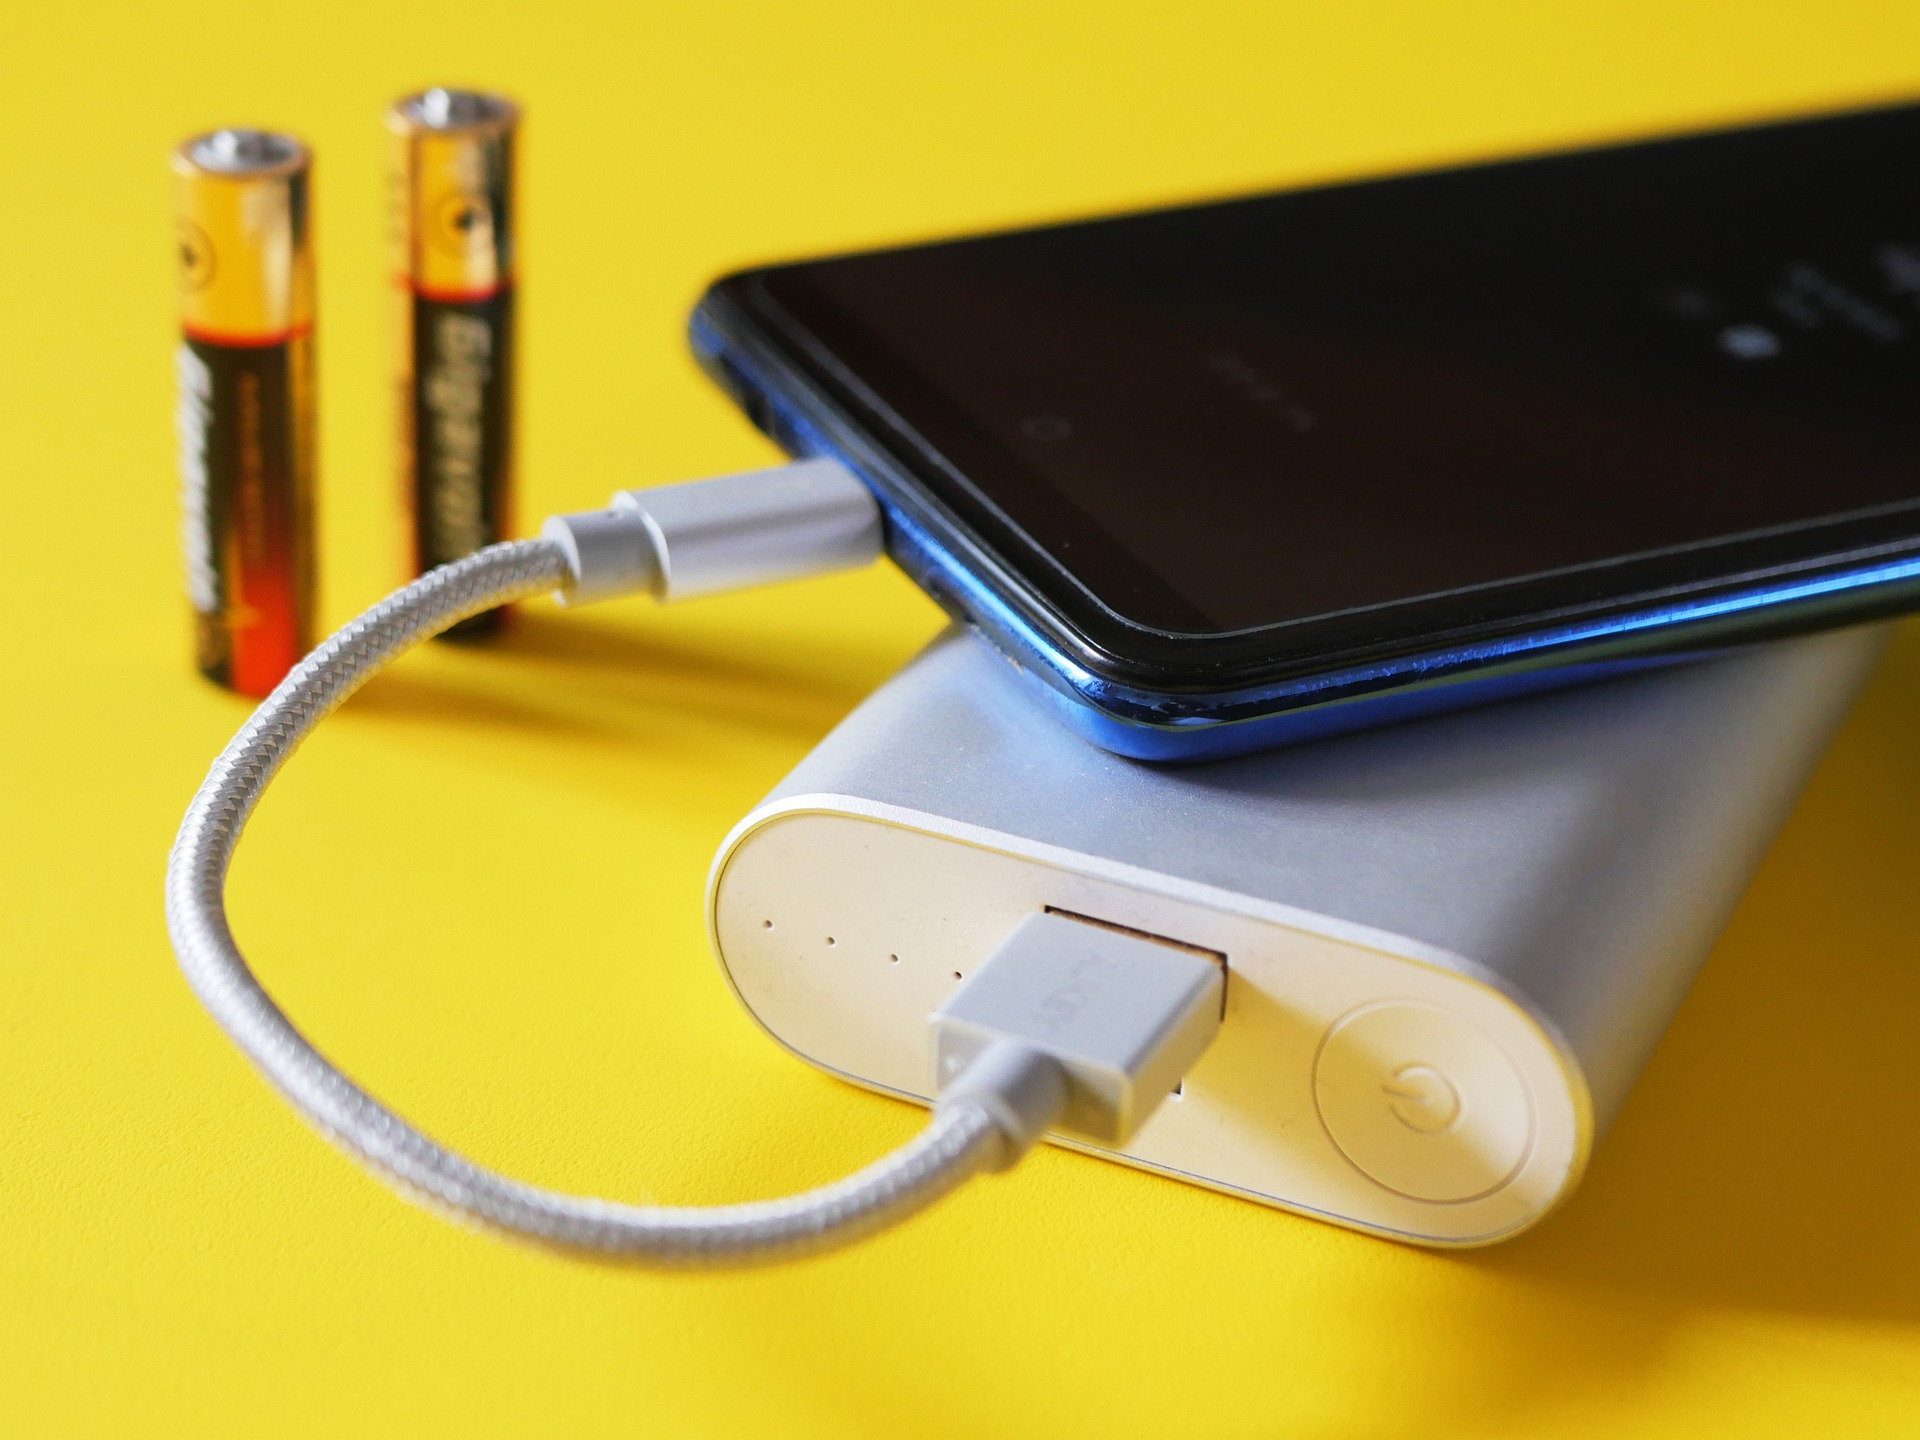 A smartphone getting charged from a white power bank.